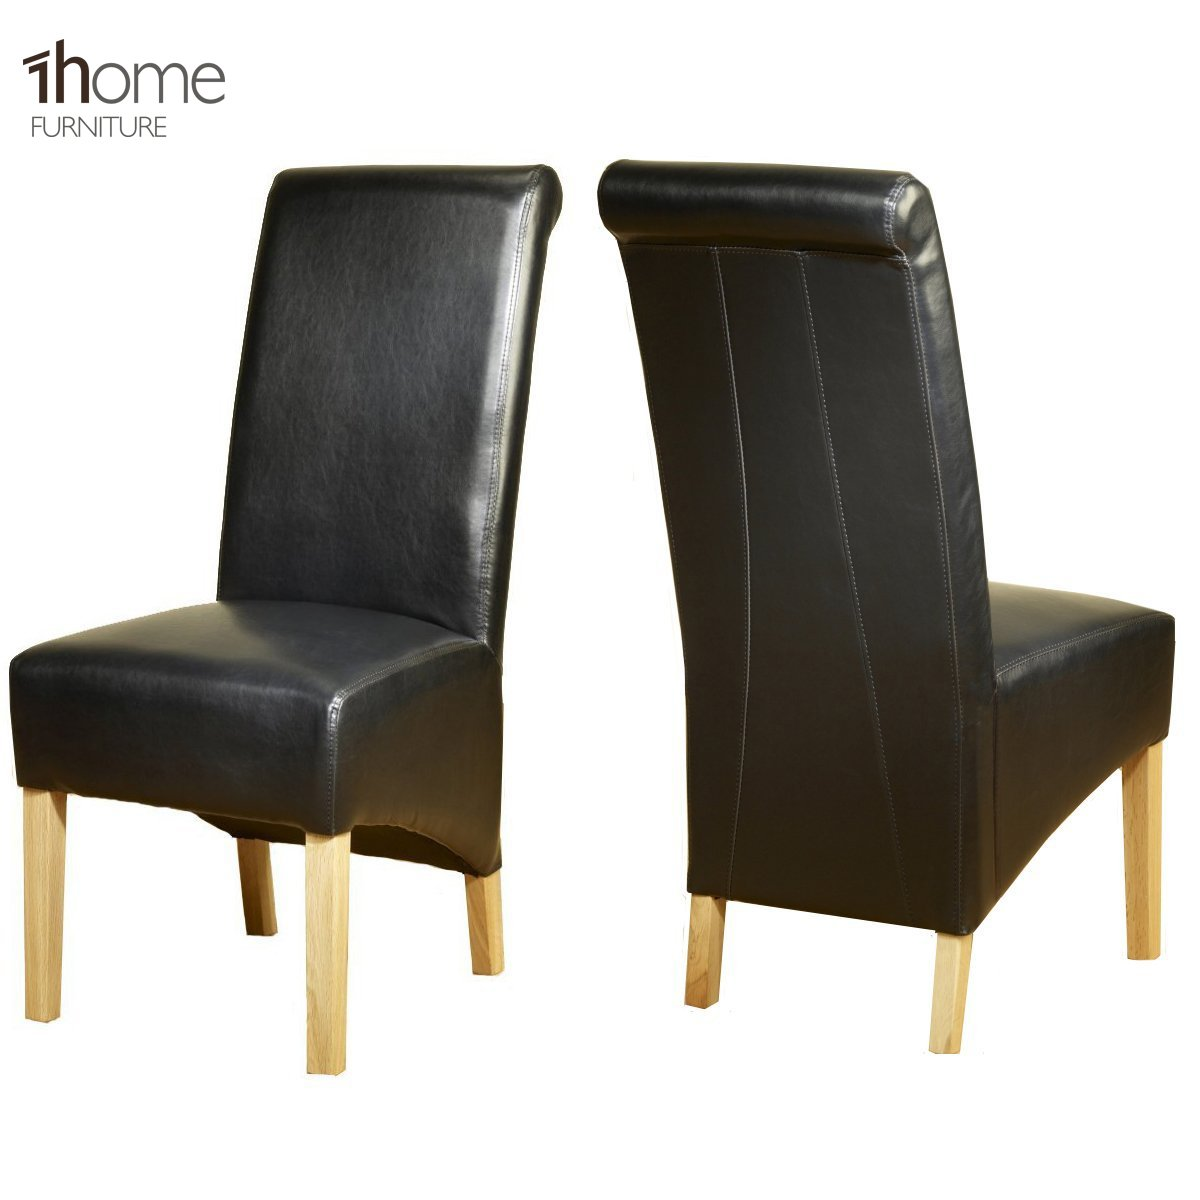 1home leather dining chairs scroll high top back oak legs furniture 1 pair black amazoncouk kitchen u0026 home